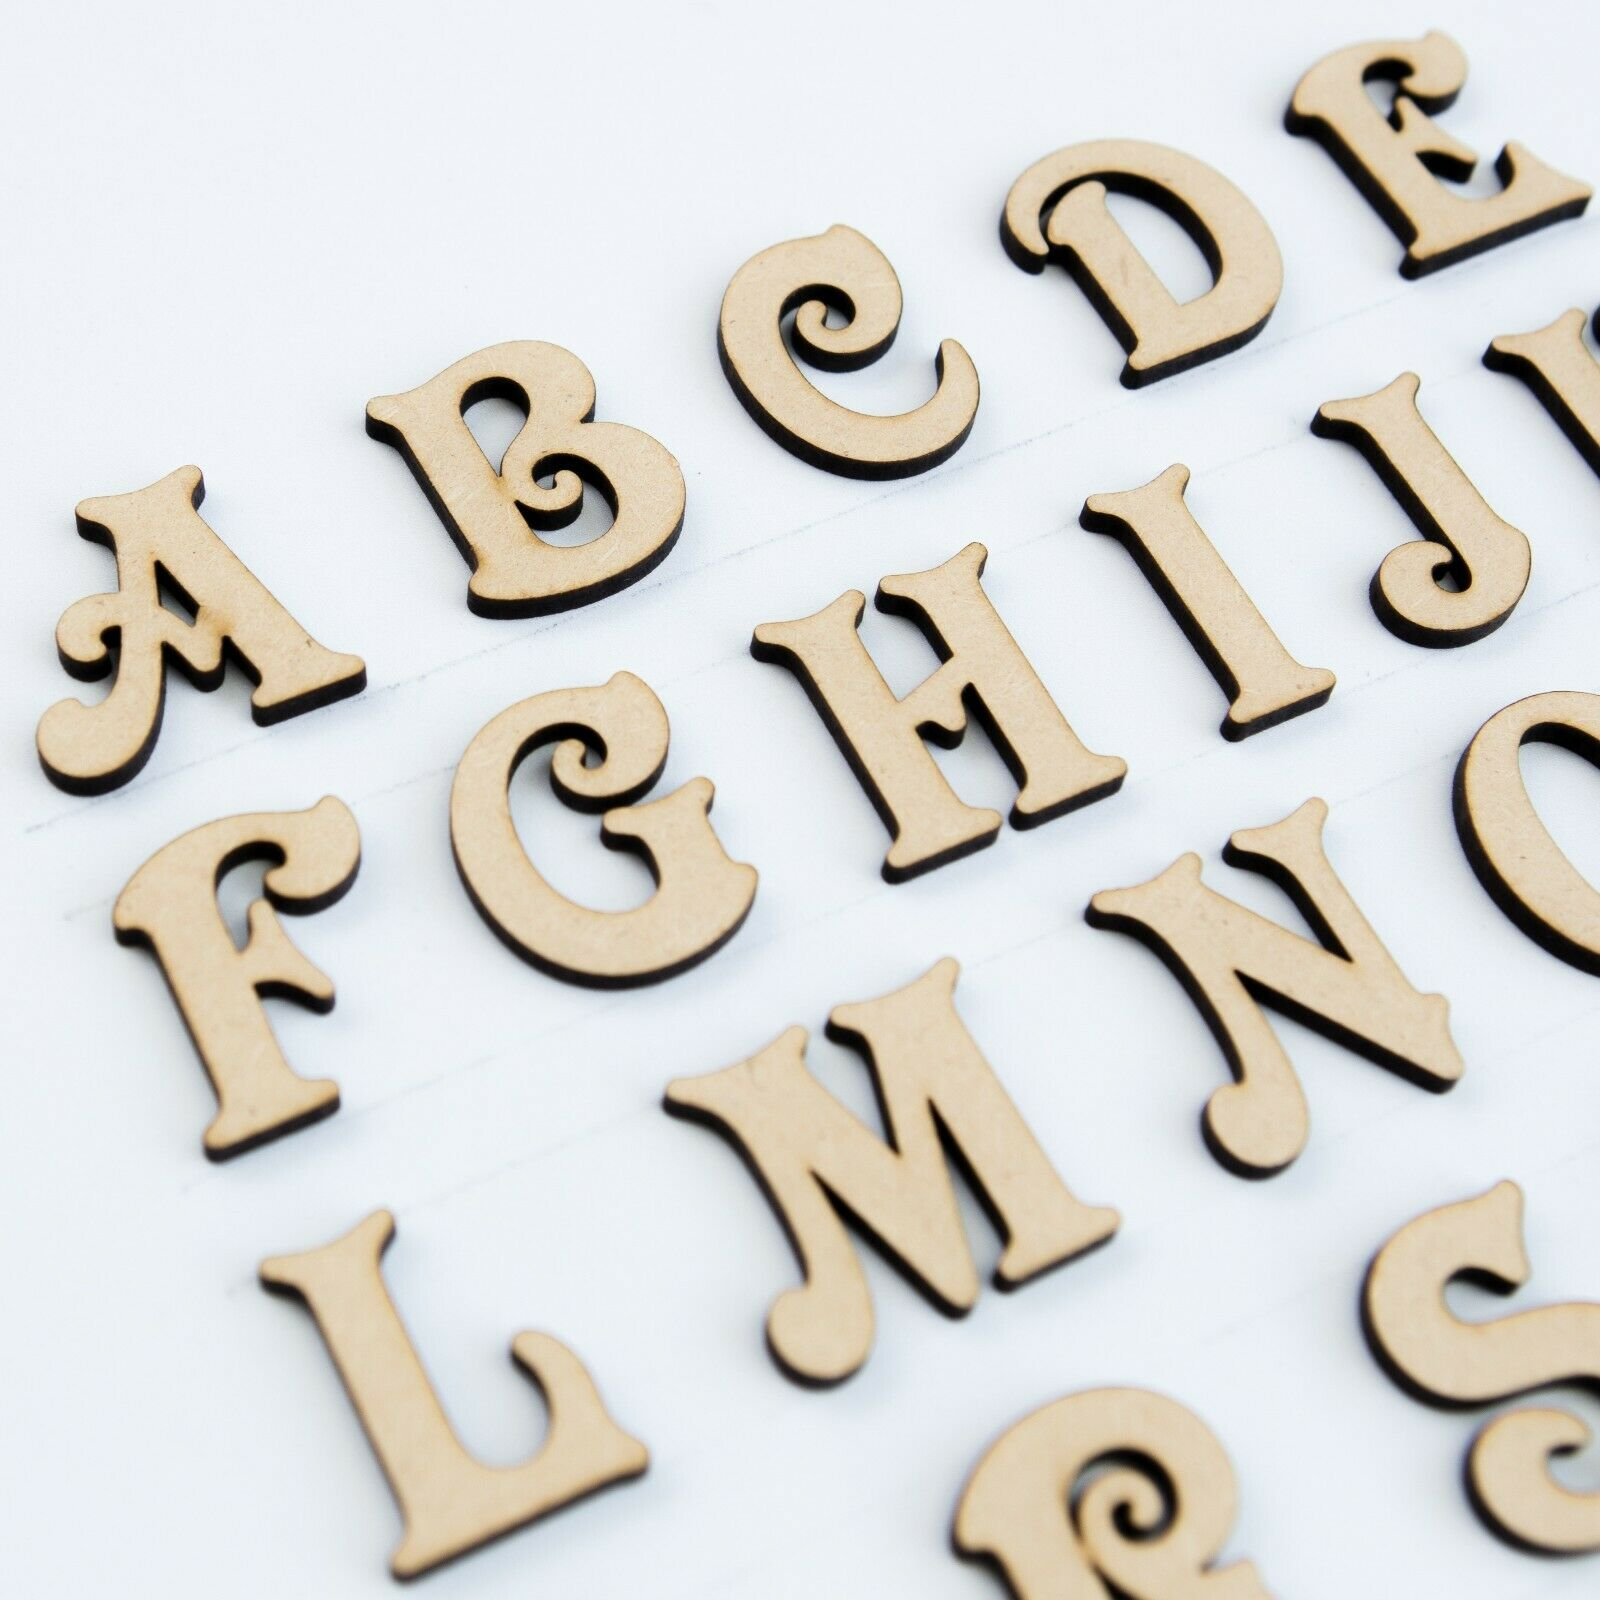 18mm thick //Valentine//Wooden craft Victorian letters with heart in MDF